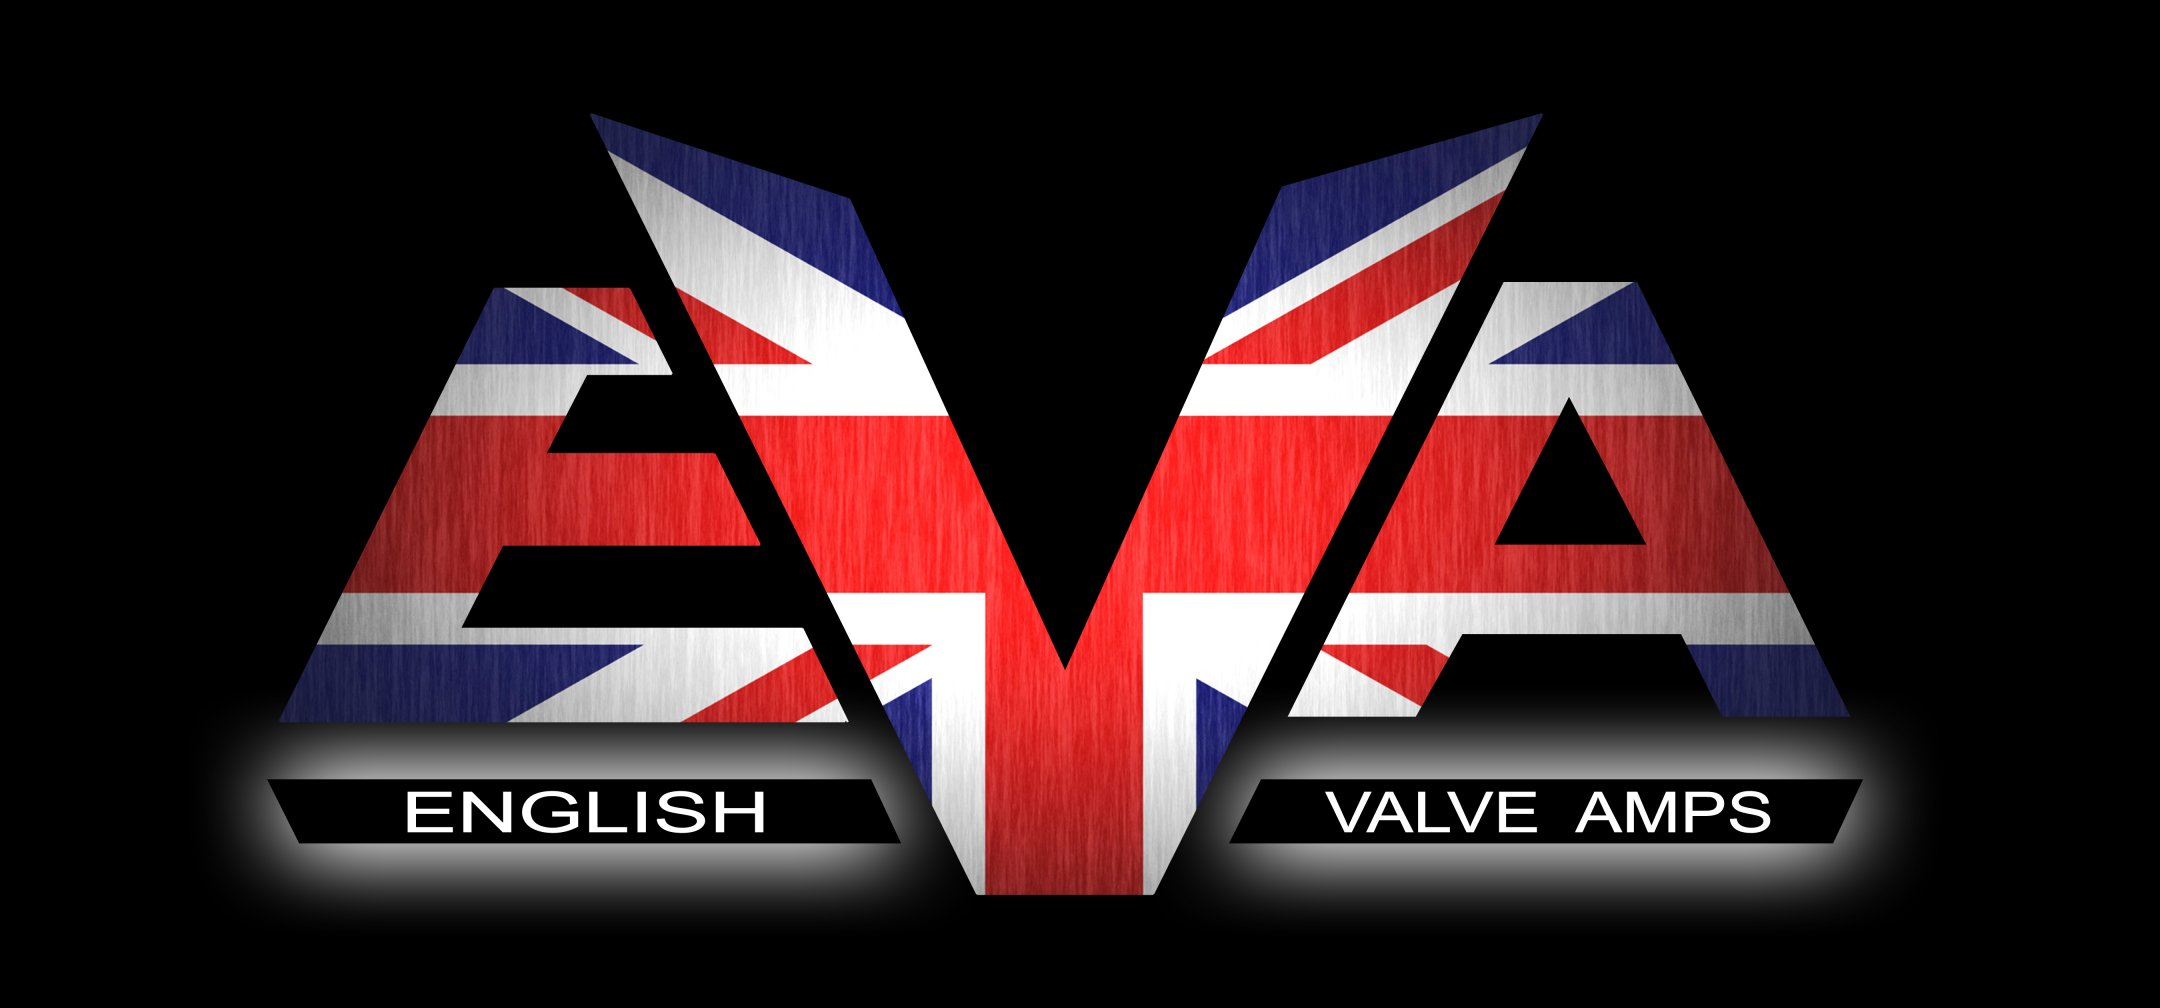 http://www.englishvalveamps.co.uk